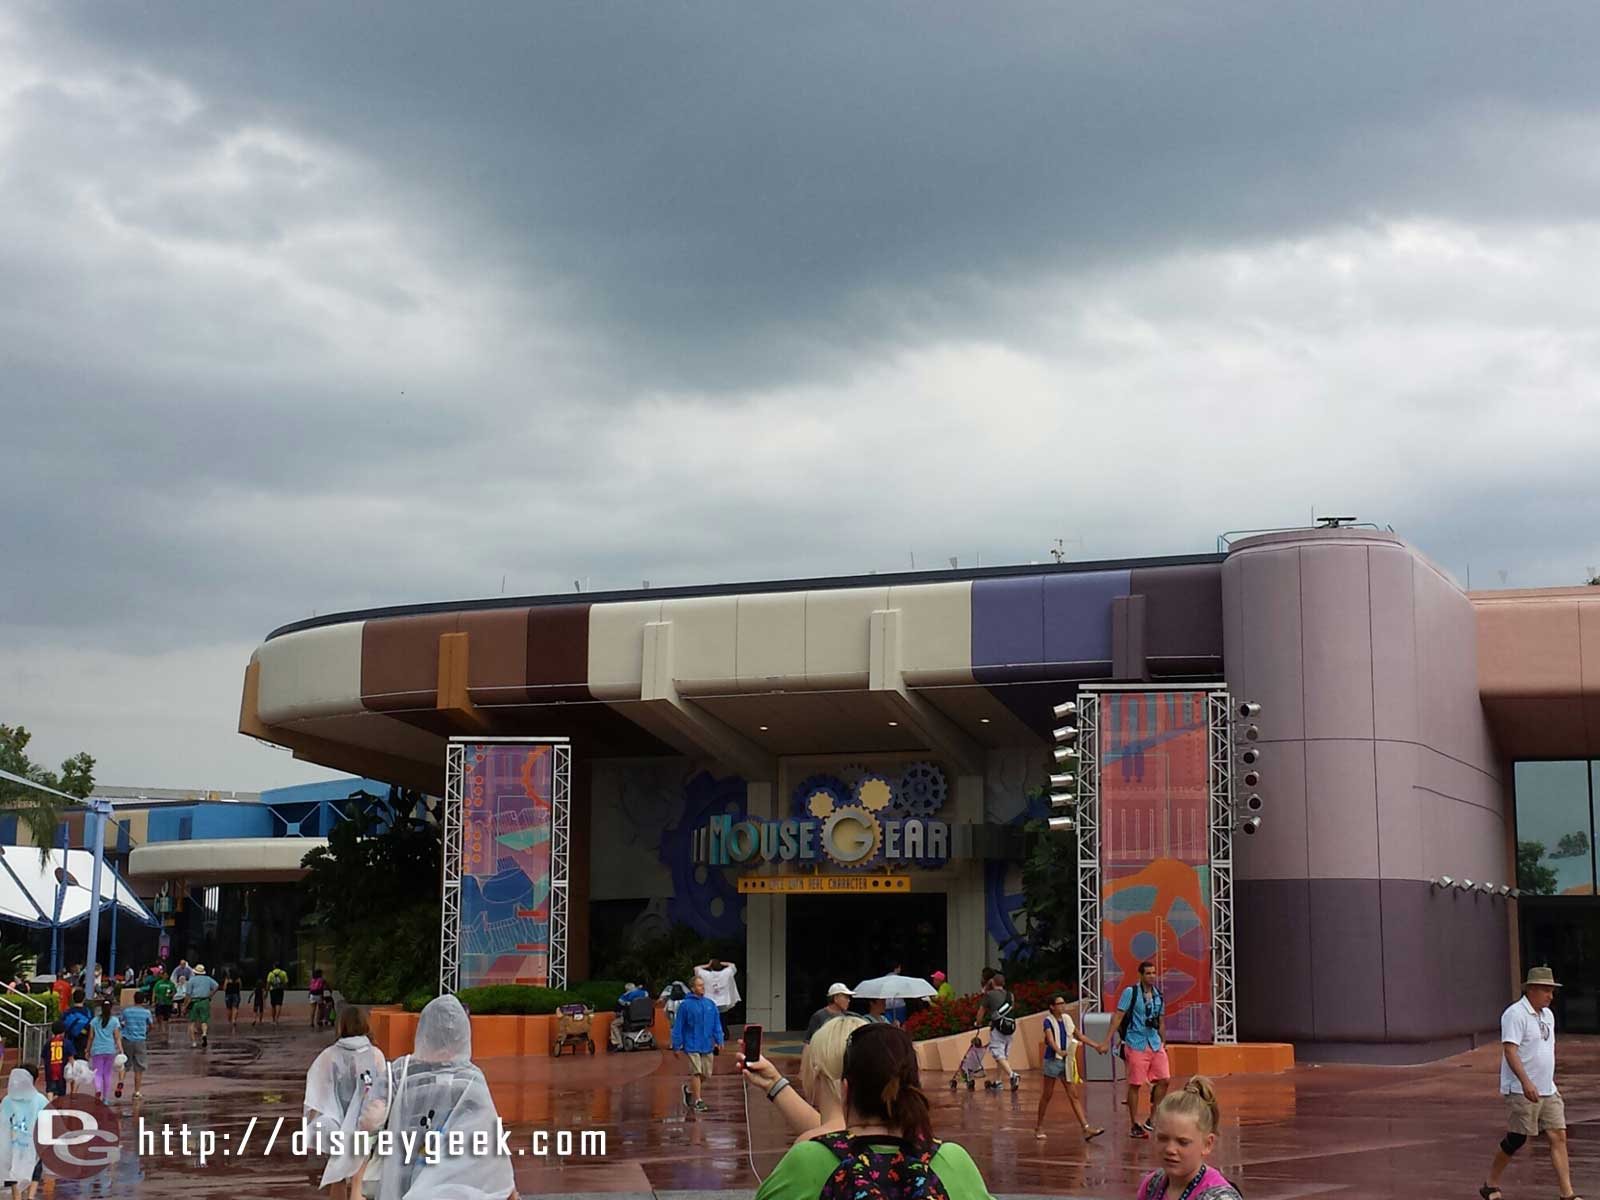 The new innovations building paint scheme is … different.. not sure how to describe it – Epcot